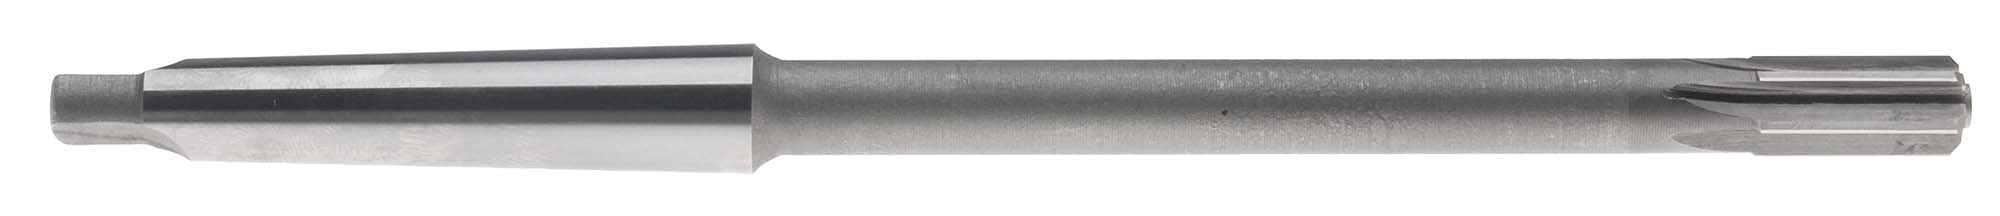 "1-5/16"" Expanding Machine Reamer, Taper Shank, High Speed Steel"